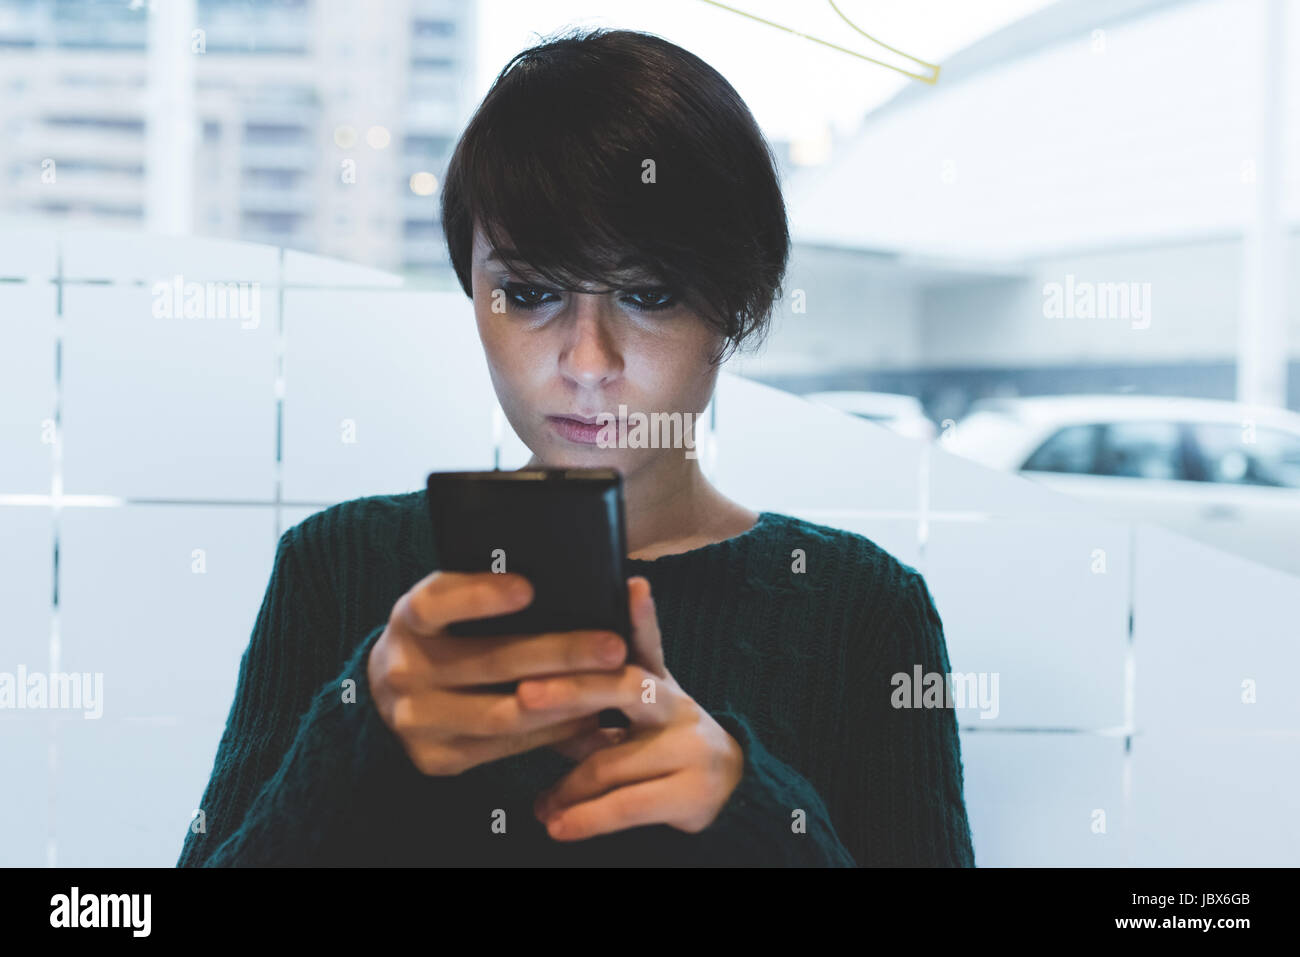 Woman in cafe looking at smartphone - Stock Image